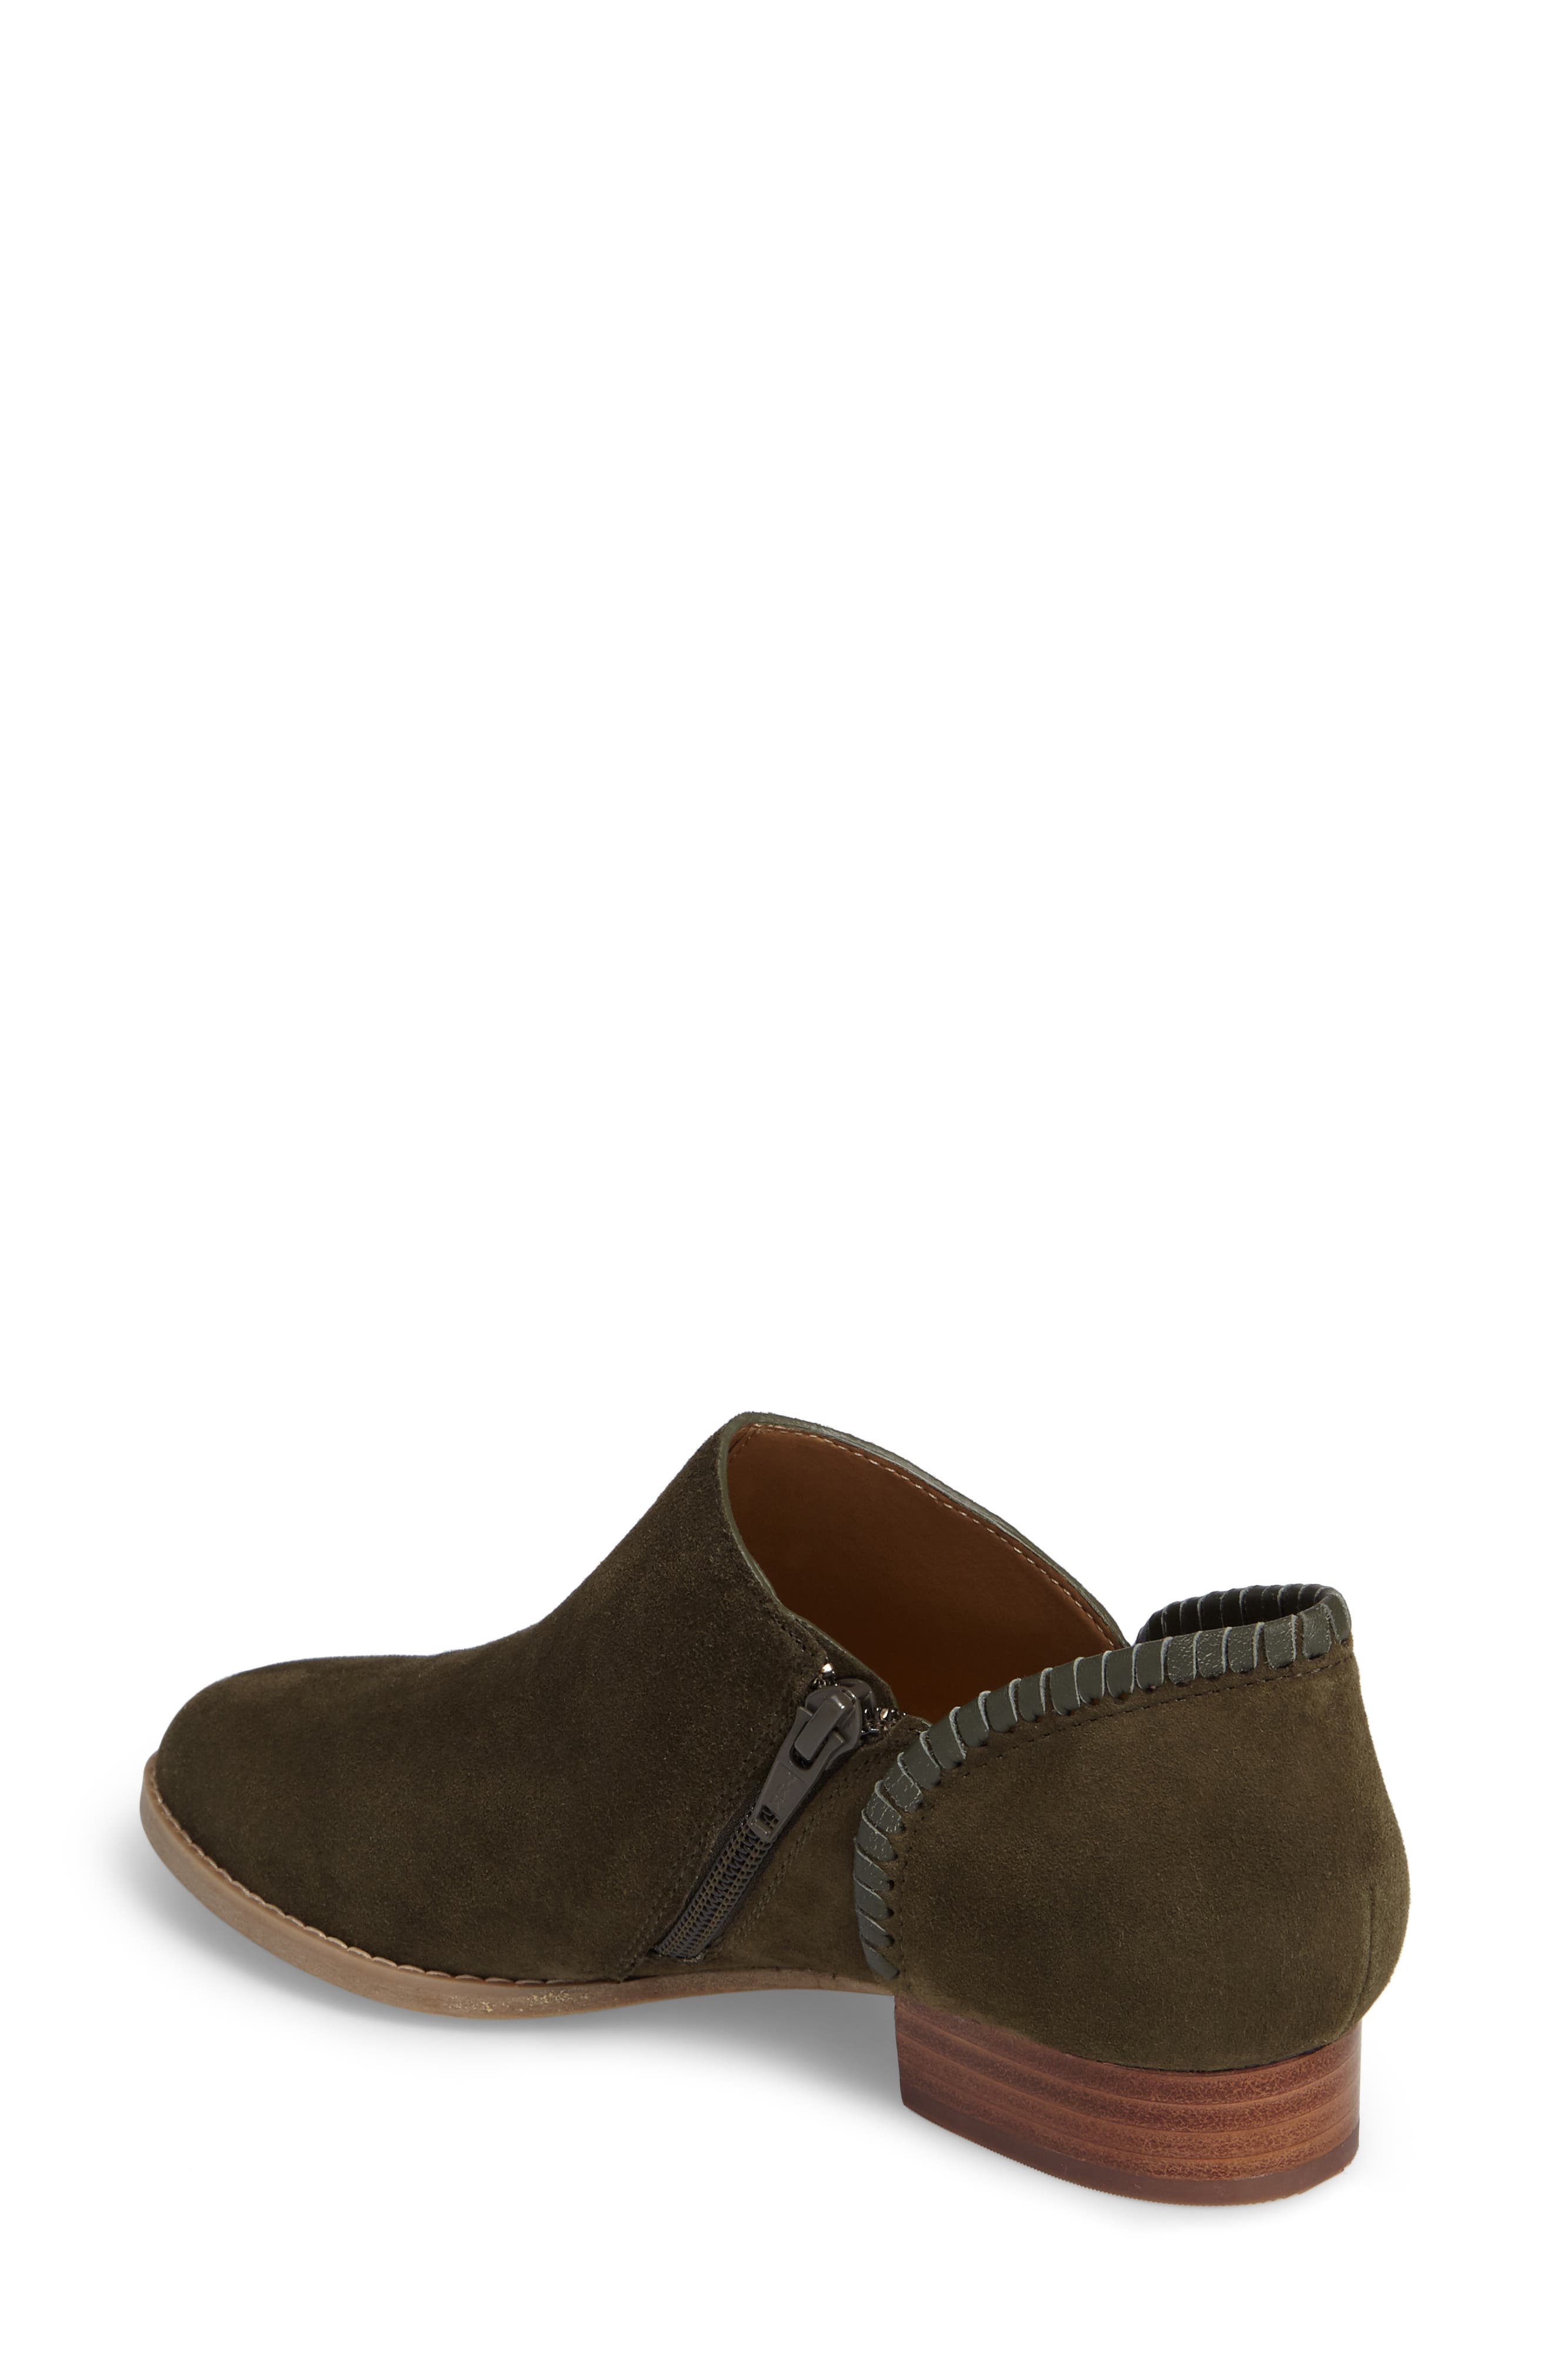 Avery Low Bootie,                             Alternate thumbnail 2, color,                             Olive Suede